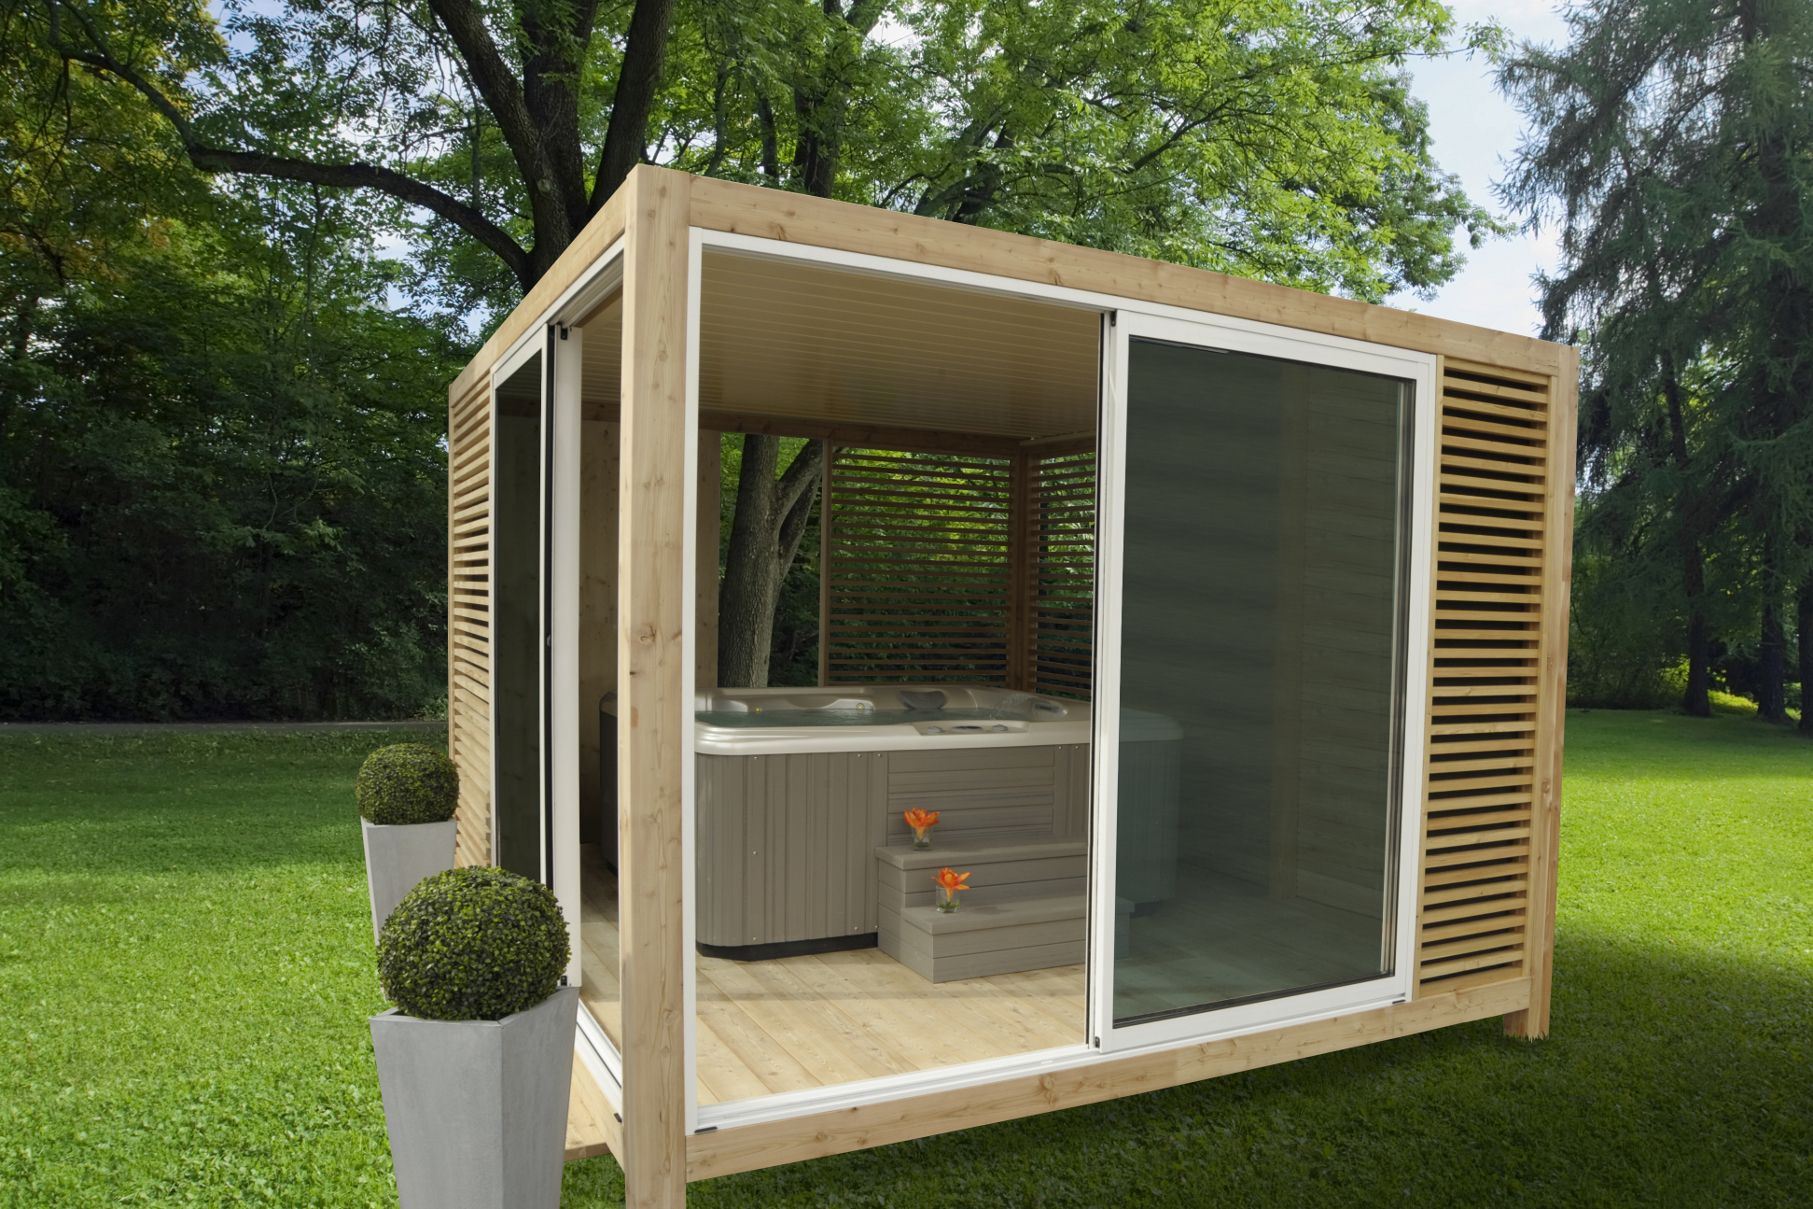 outsun abri spa ind pendant dans le jardin sheds en 2019 pinterest. Black Bedroom Furniture Sets. Home Design Ideas